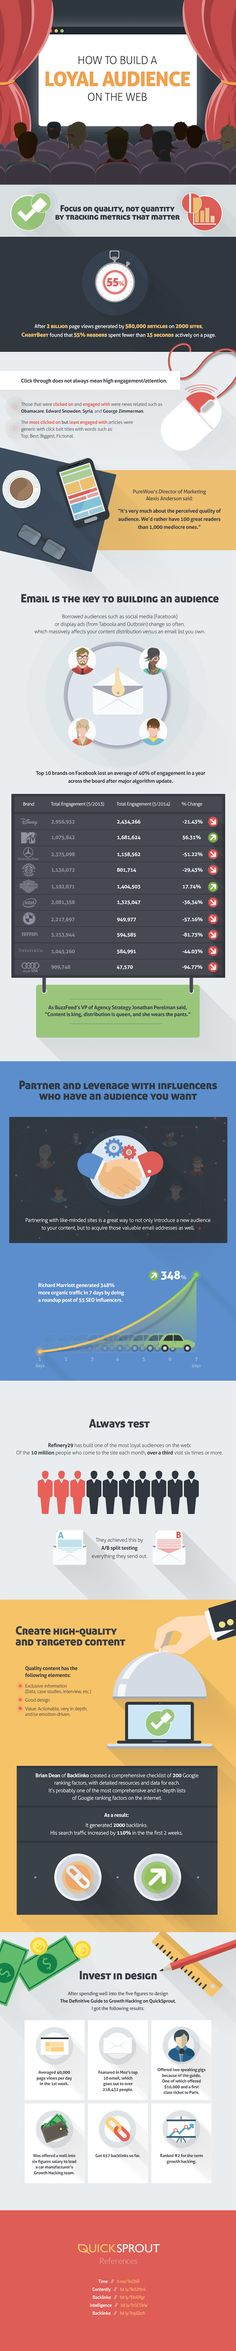 How to Build A Loyal Audience On The Web - #infographic #marketing #SMM